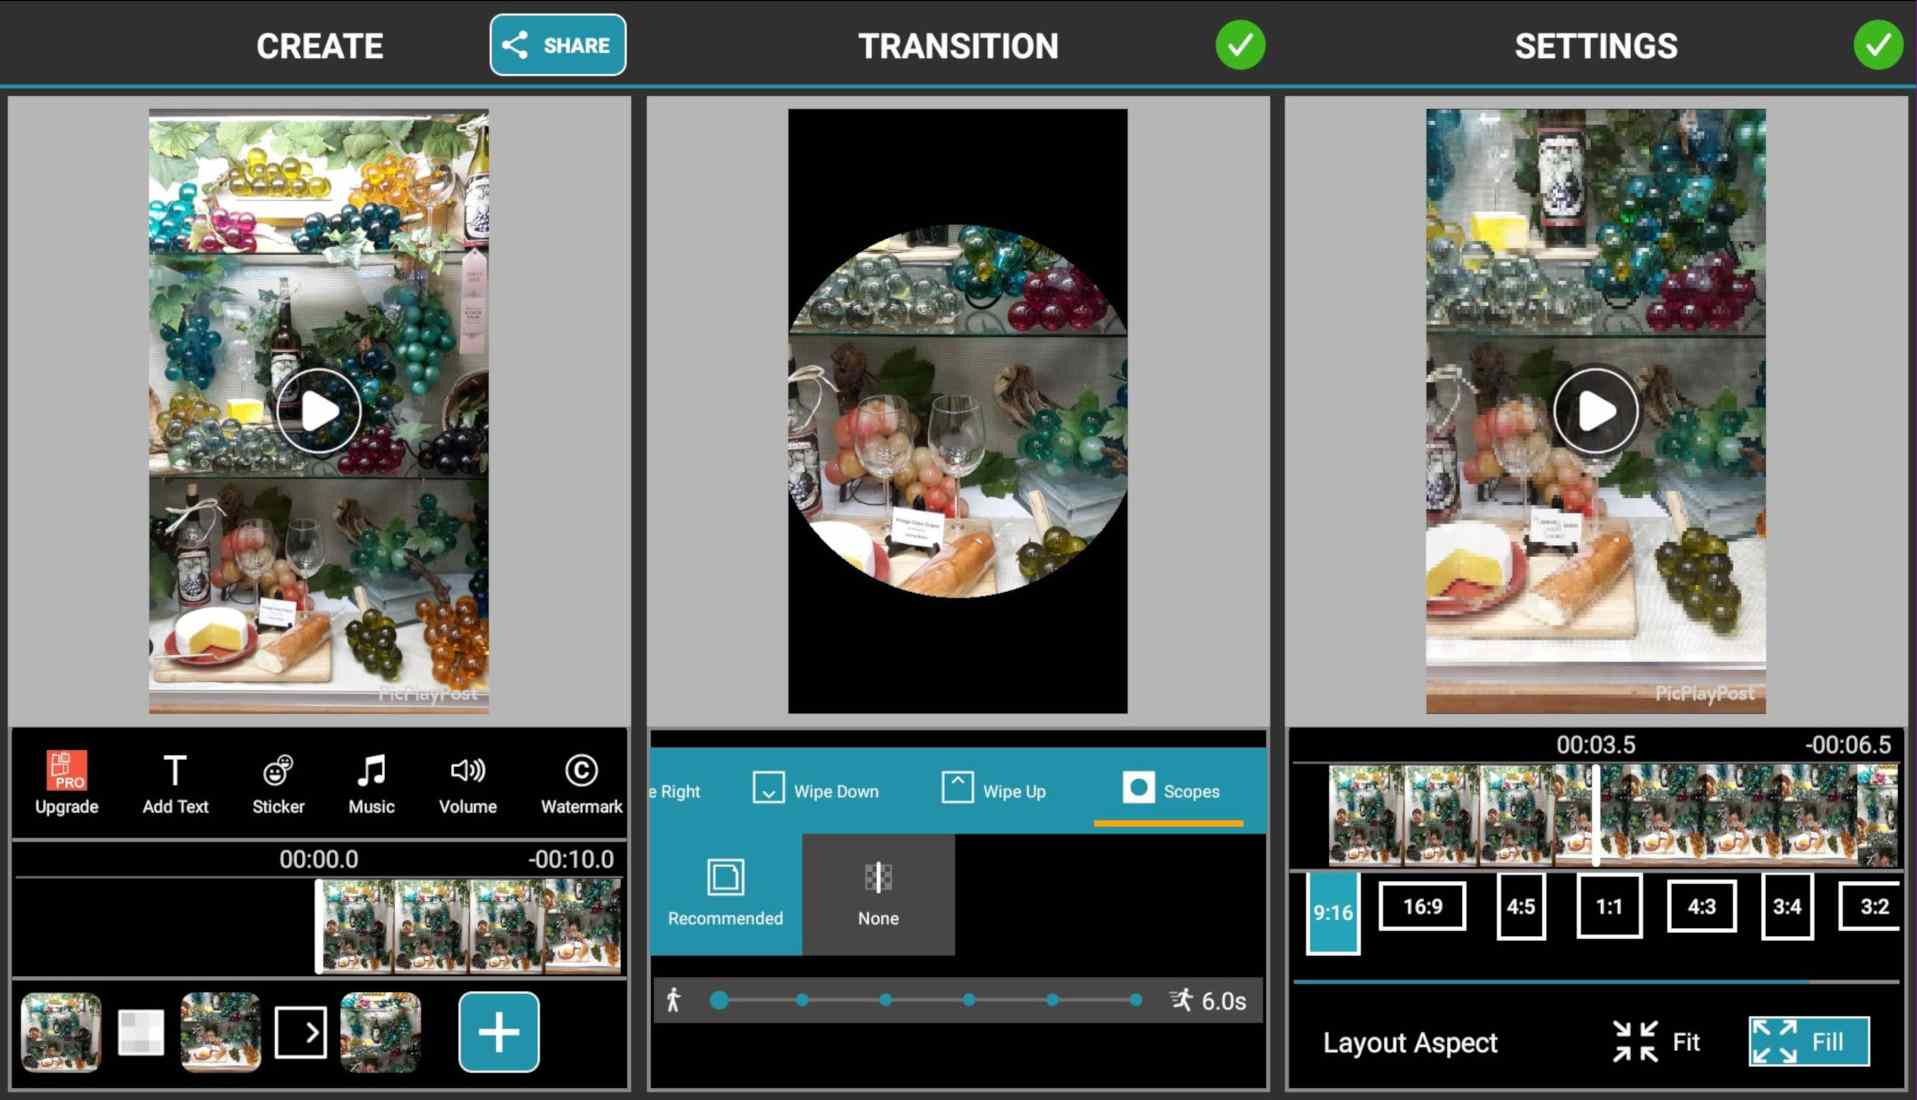 Add effects, apply a transition, and choose a layout for a PicPlayPost slideshow